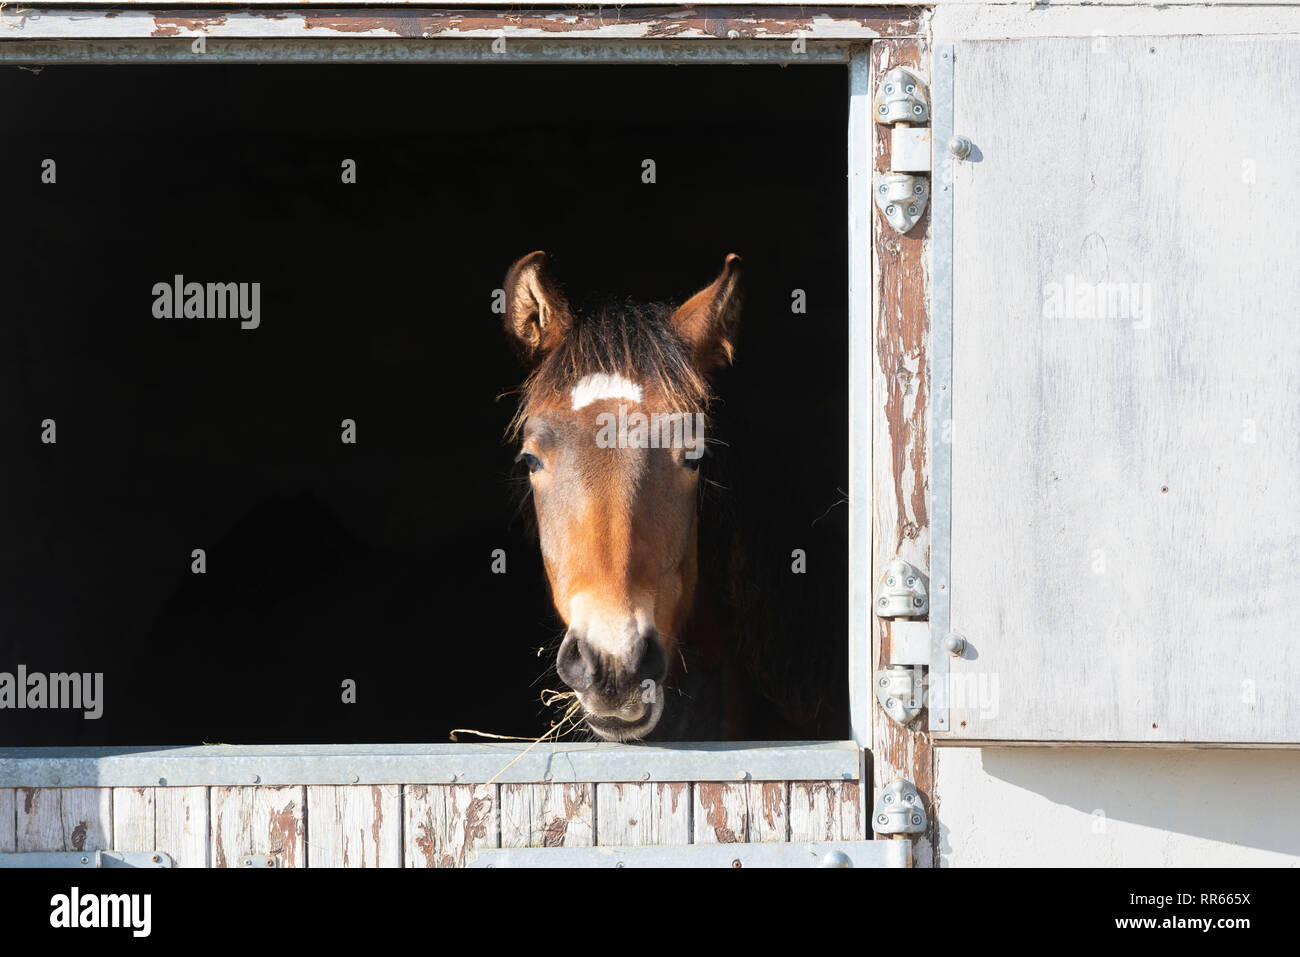 A Lusitano Foal Feeding on Hay Looks Out from a Stable Door - Stock Image